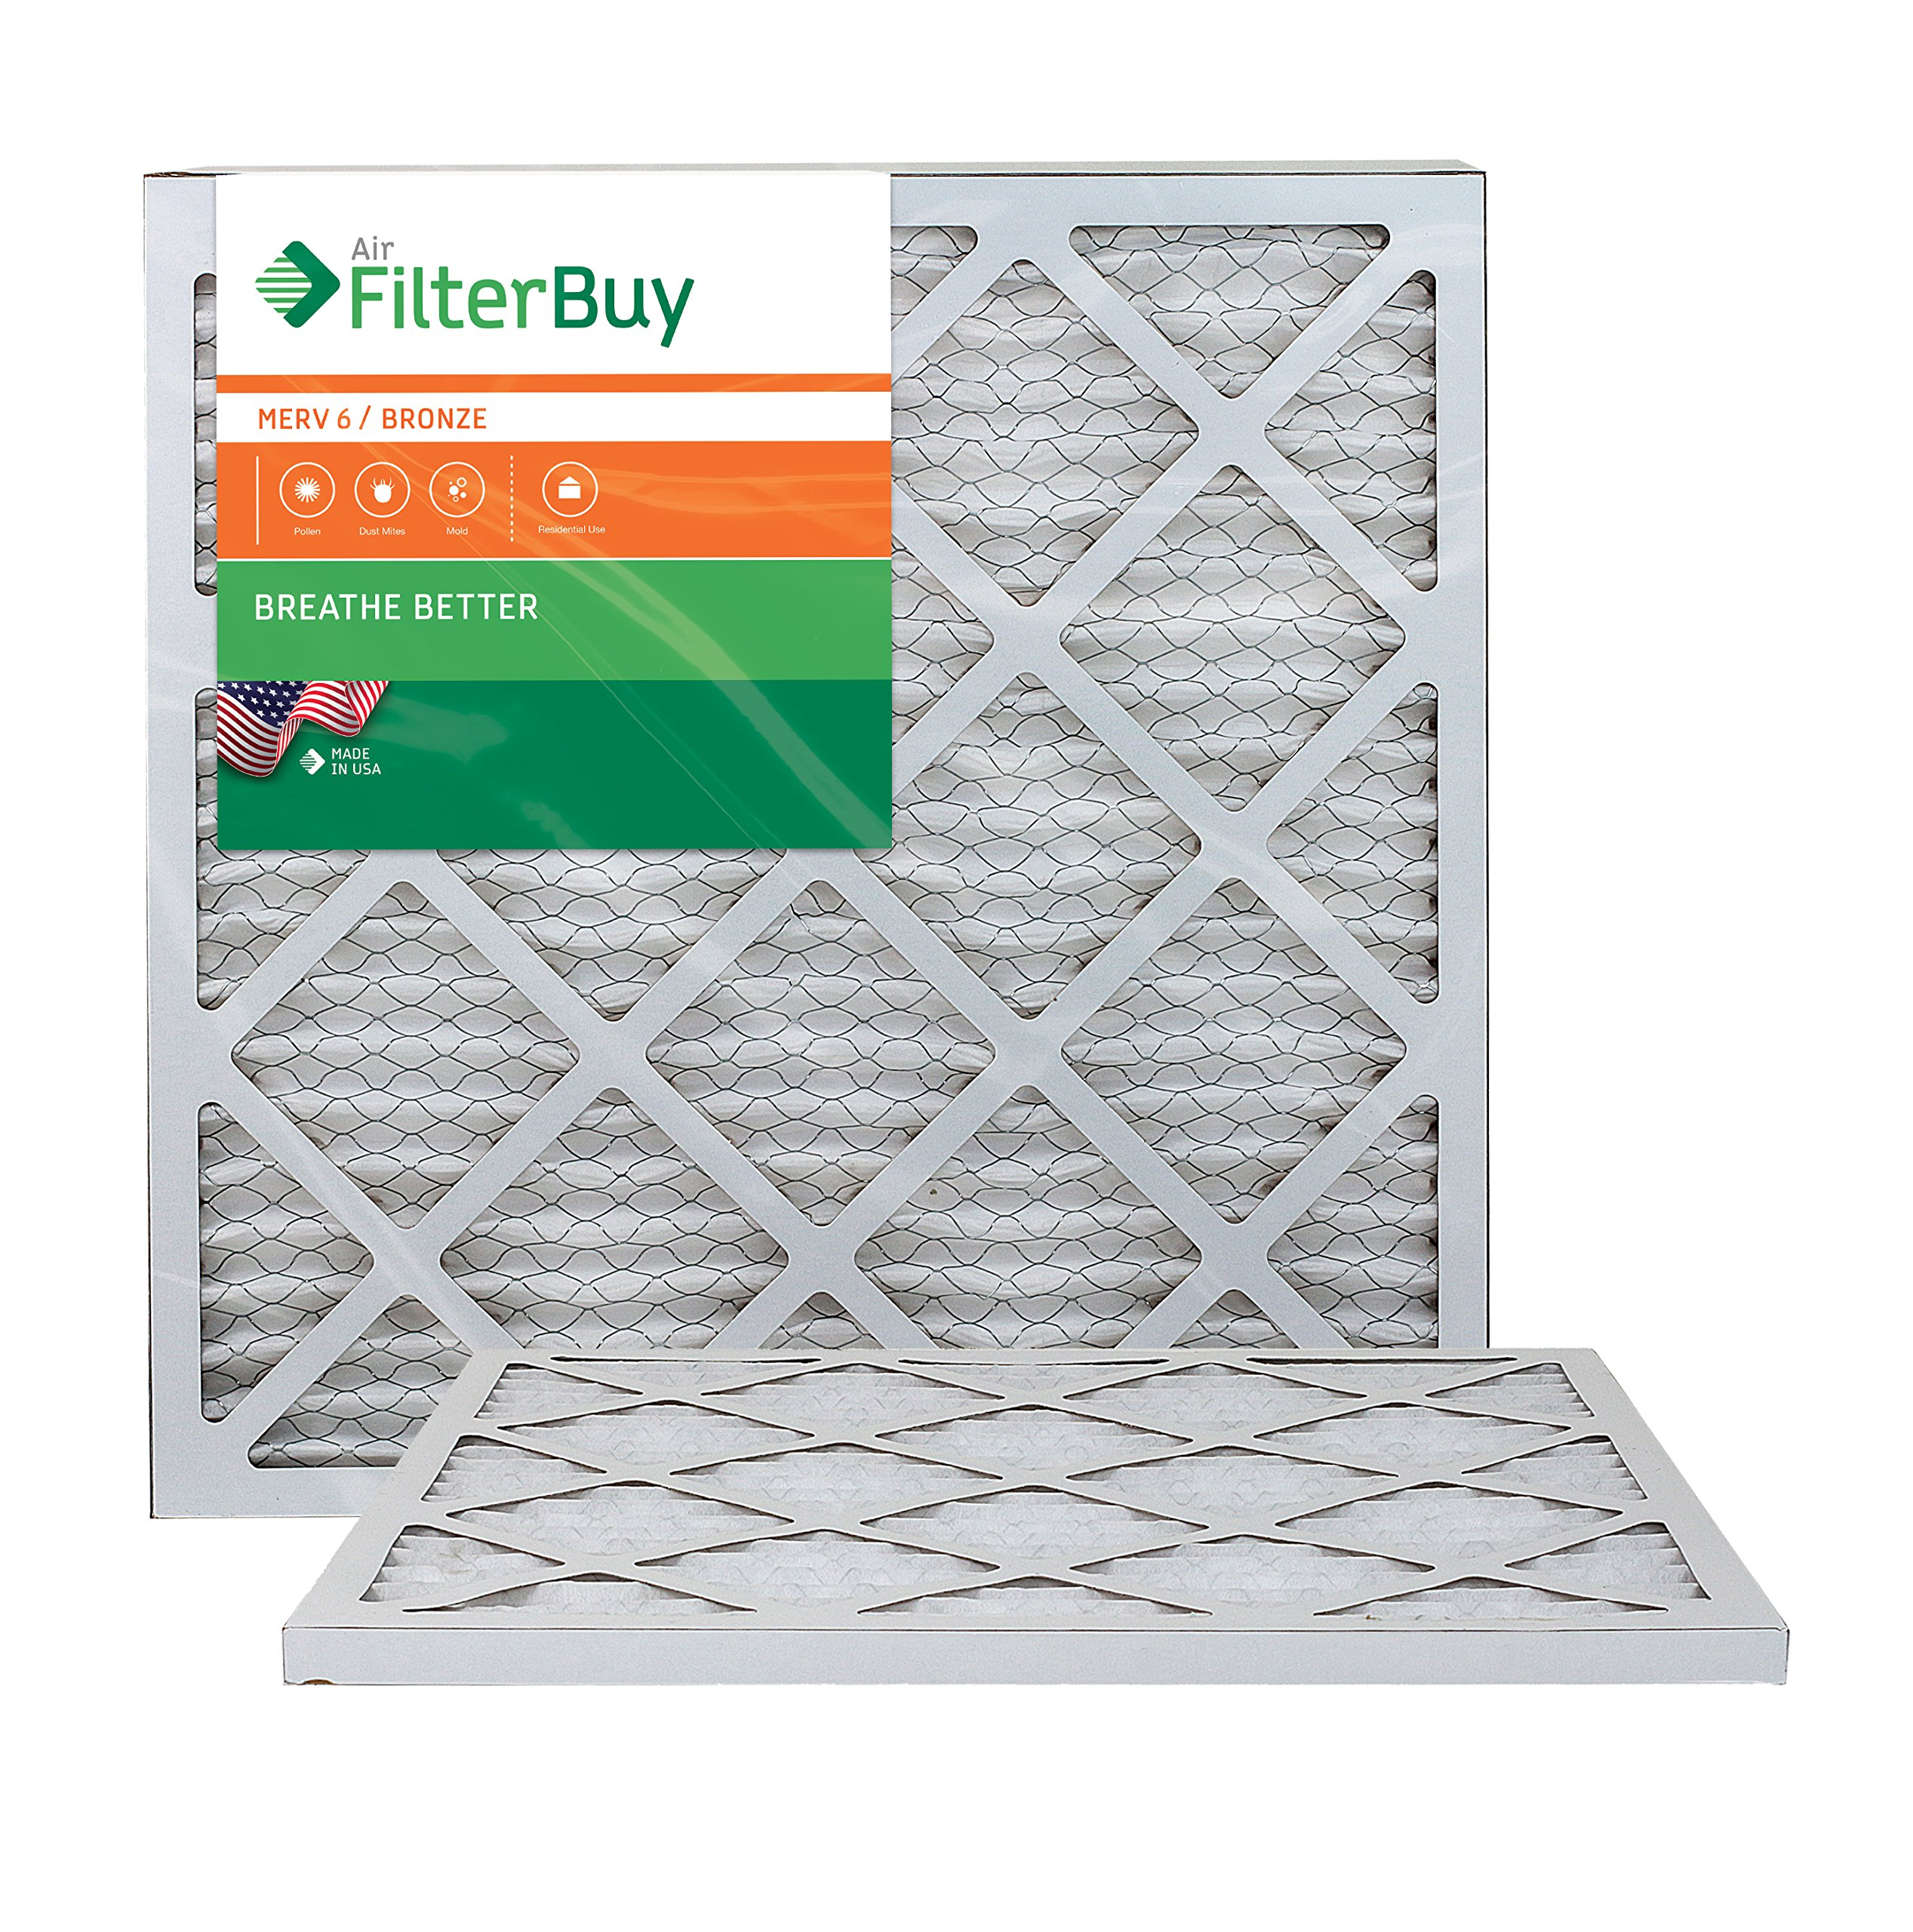 AFB Bronze MERV 6 21x22x1 Pleated AC Furnace Air Filter. Pack of 2 Filters. 100% produced in the USA.